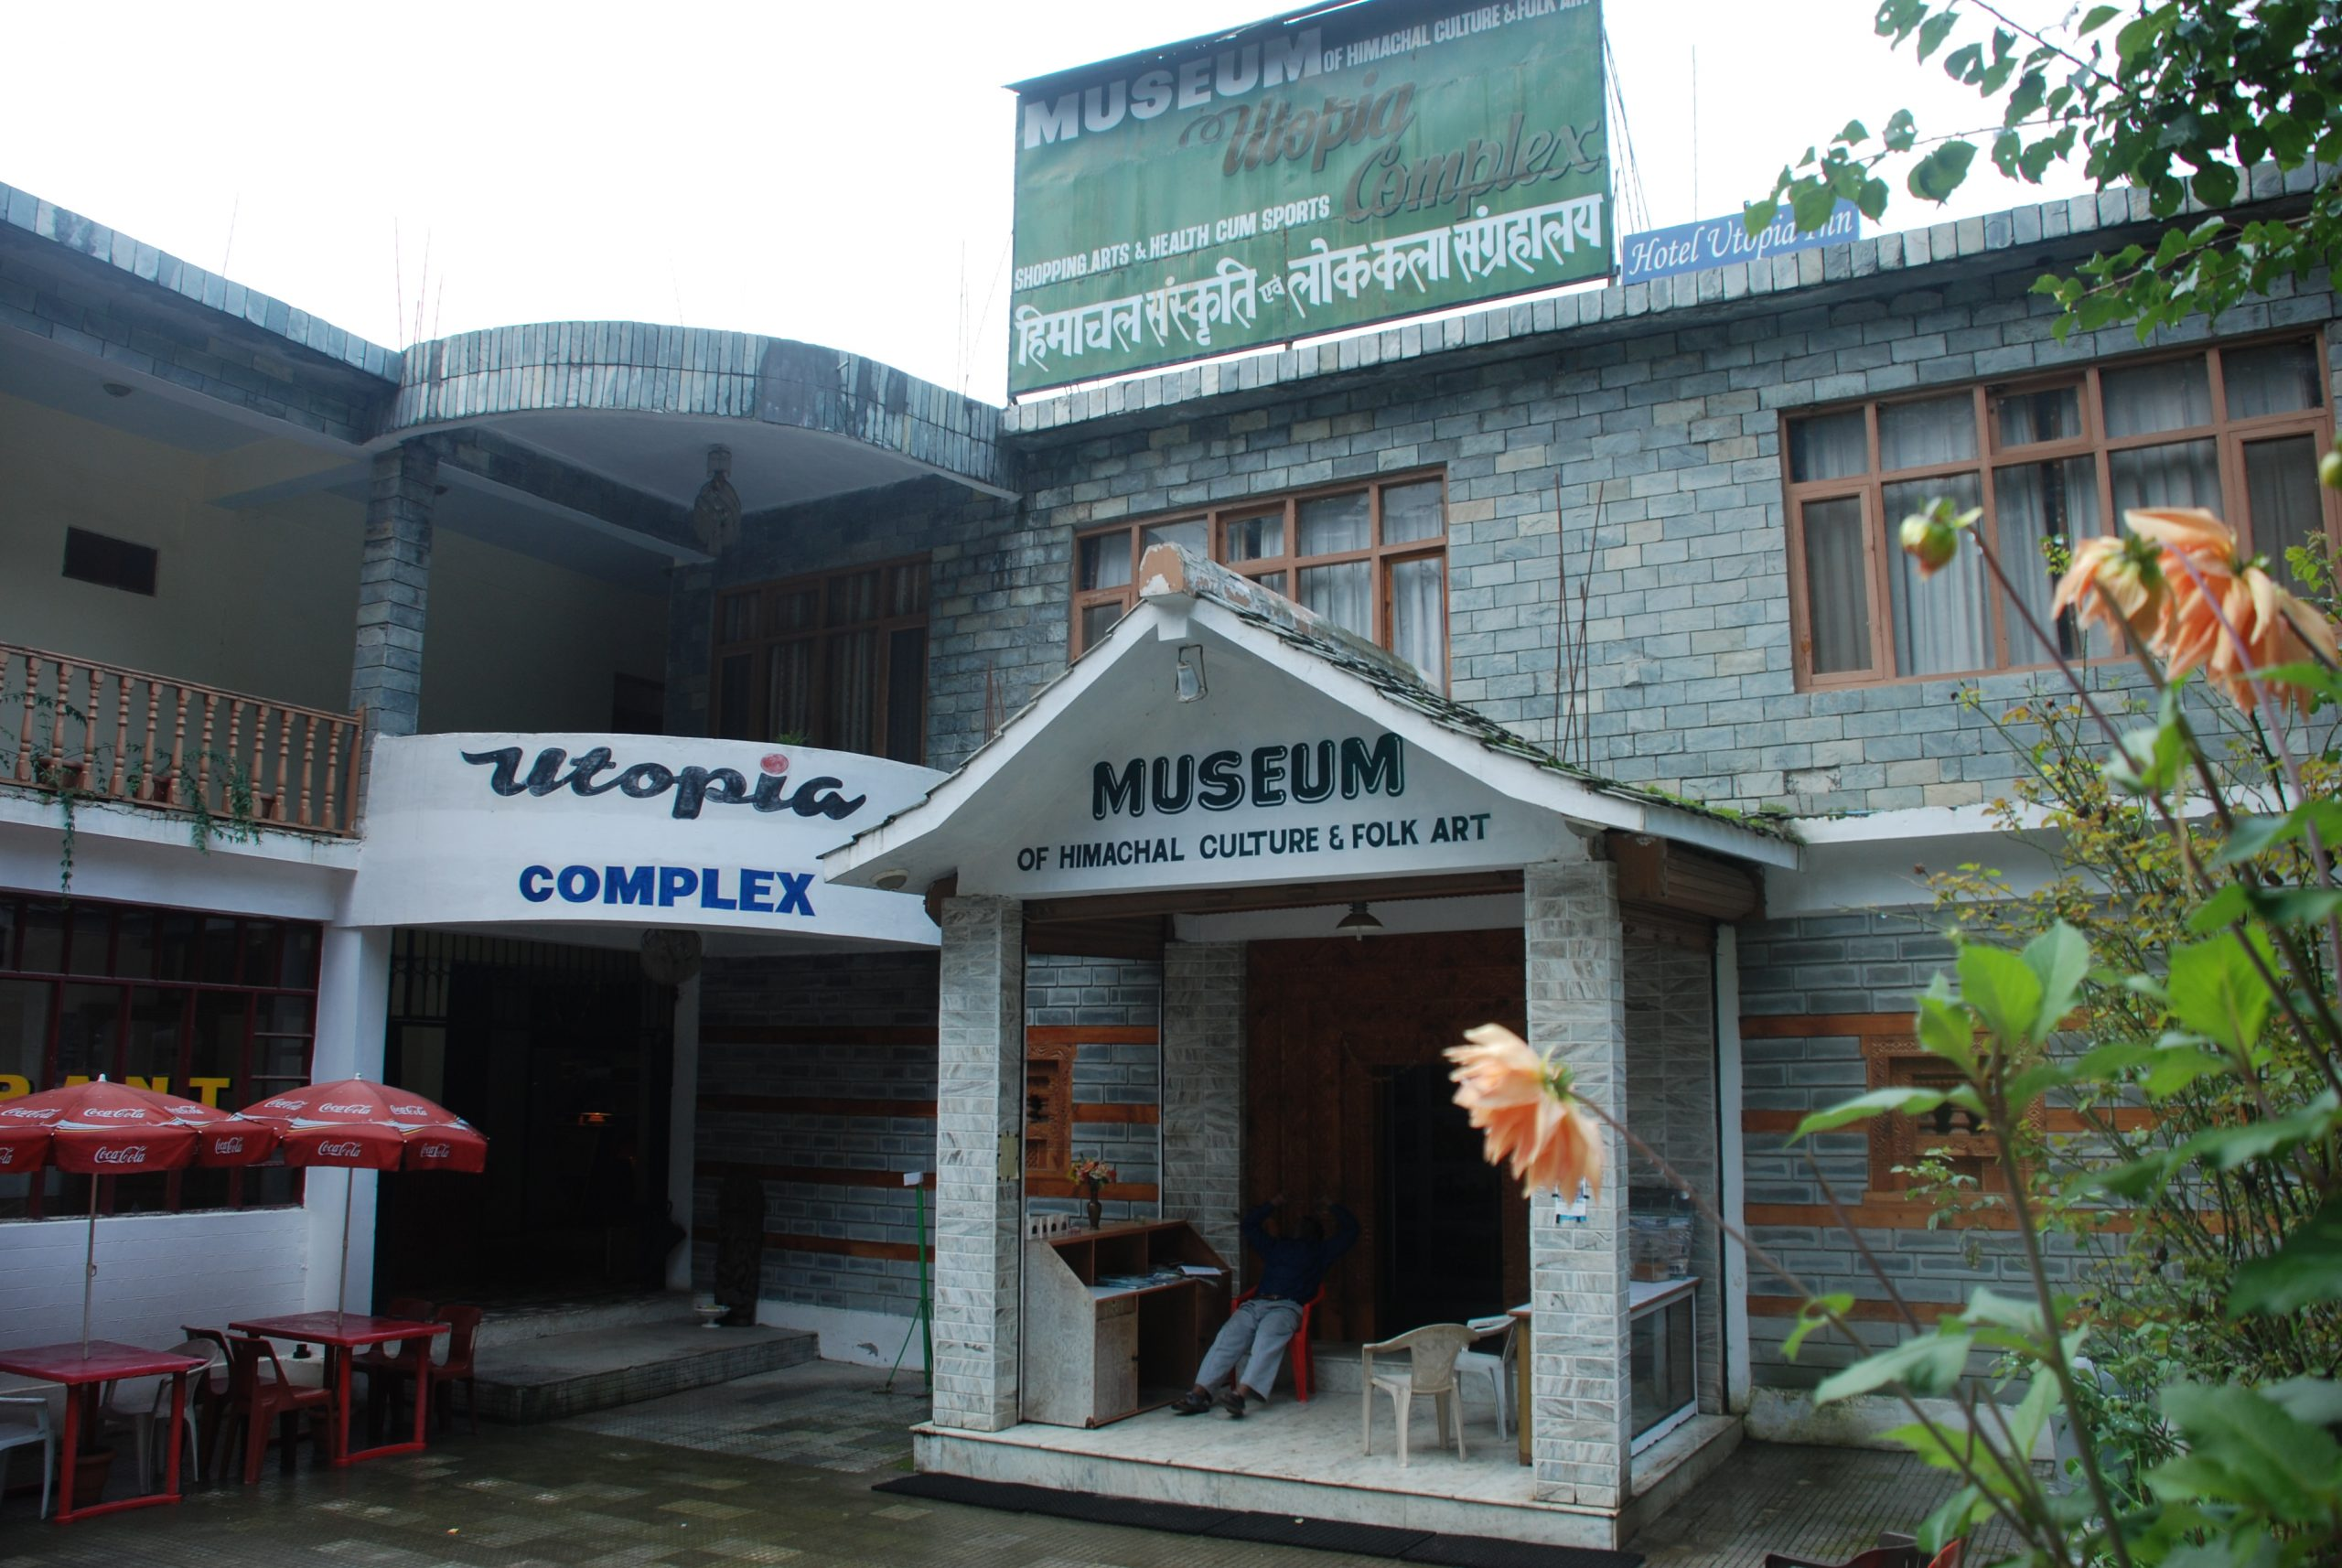 Museum of Himachal Culture and Folk Art - Amazing Place to Visit in Manali& Kullu